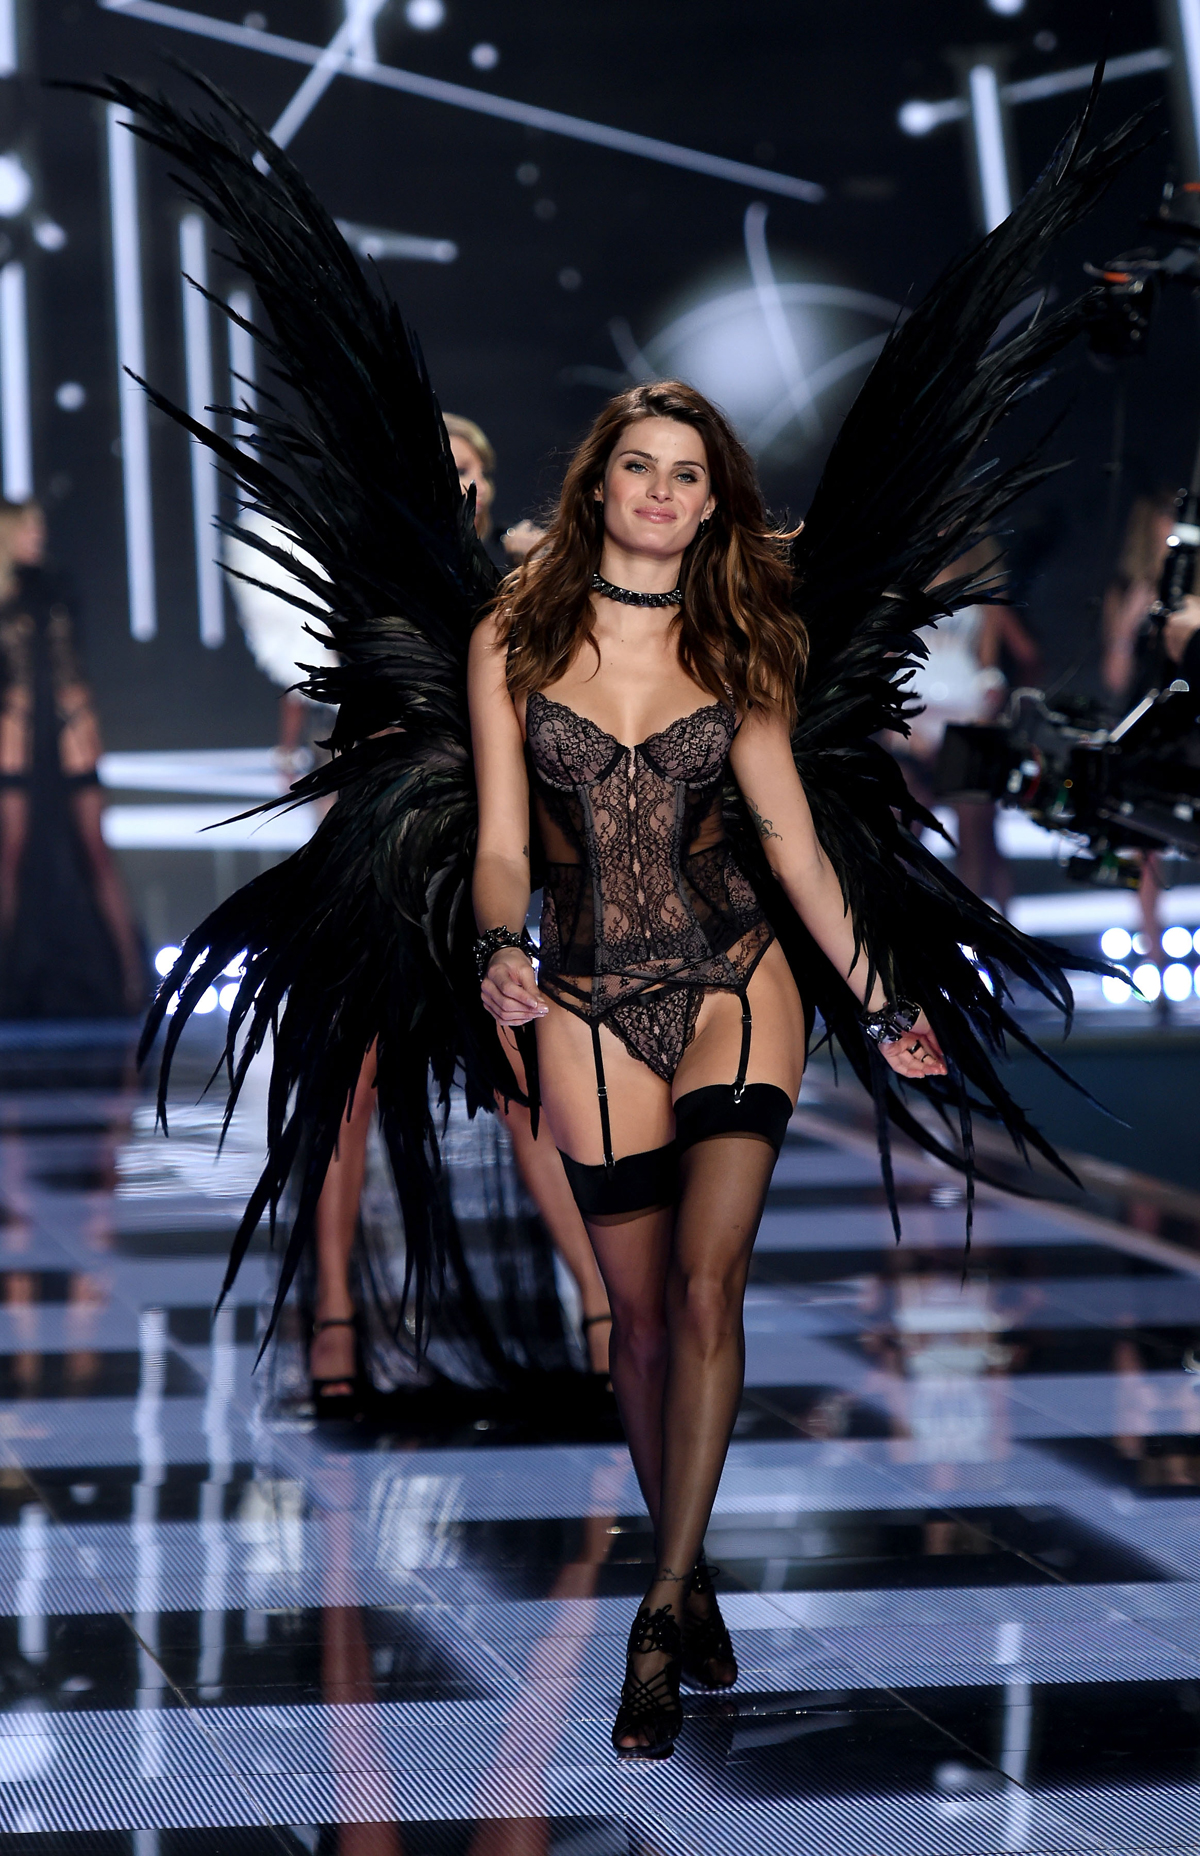 Victoria's Secret is an American designer, manufacturer, and marketer of women's lingerie, womenswear, and beauty movieboxapp.mld in as a response to packaged underwear, which the company's founder considered to be